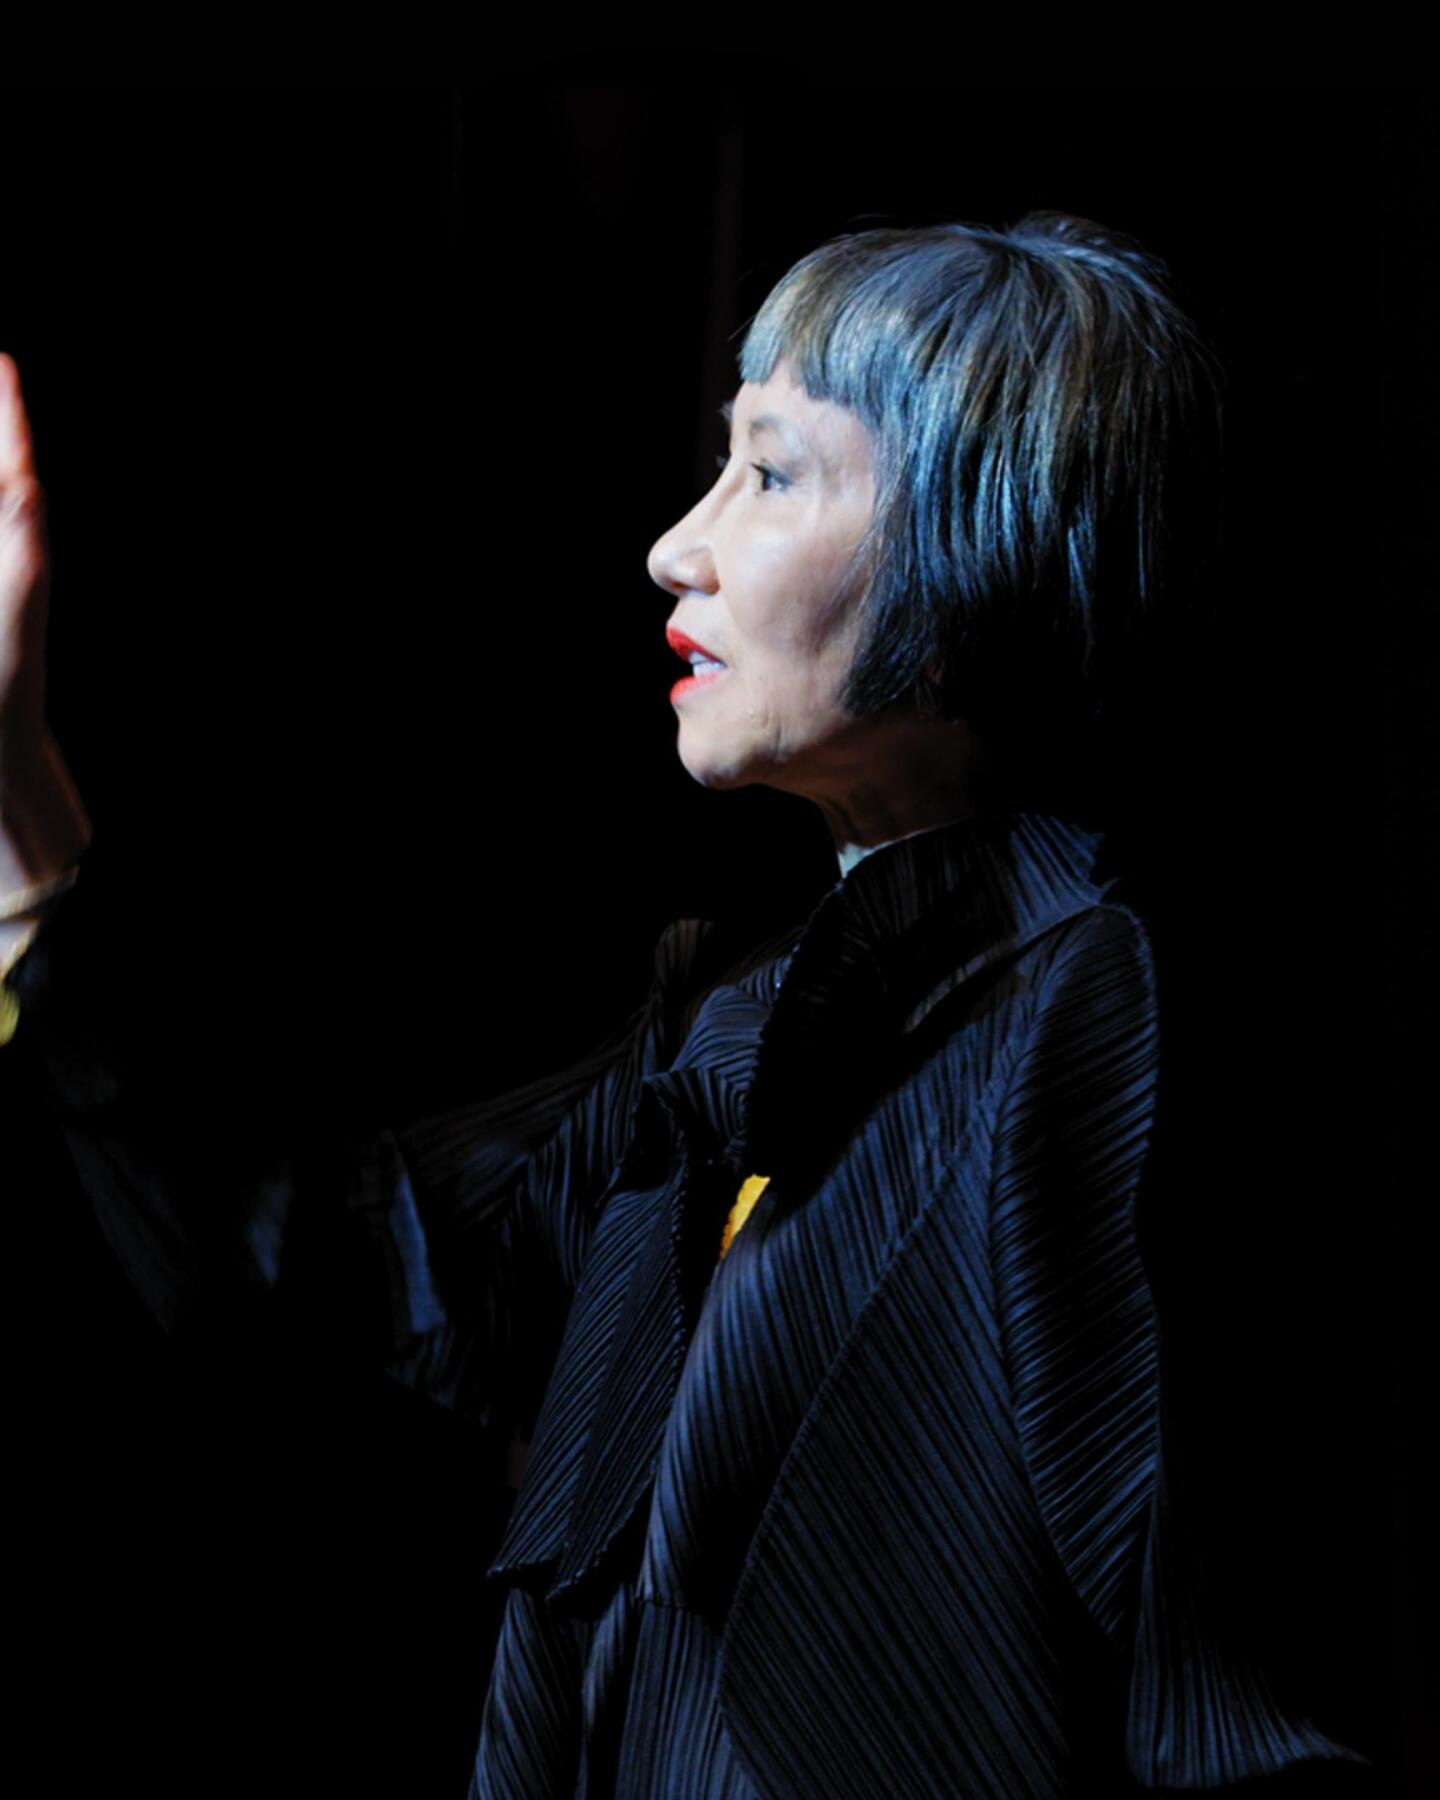 Amy Tan holds her hand up.